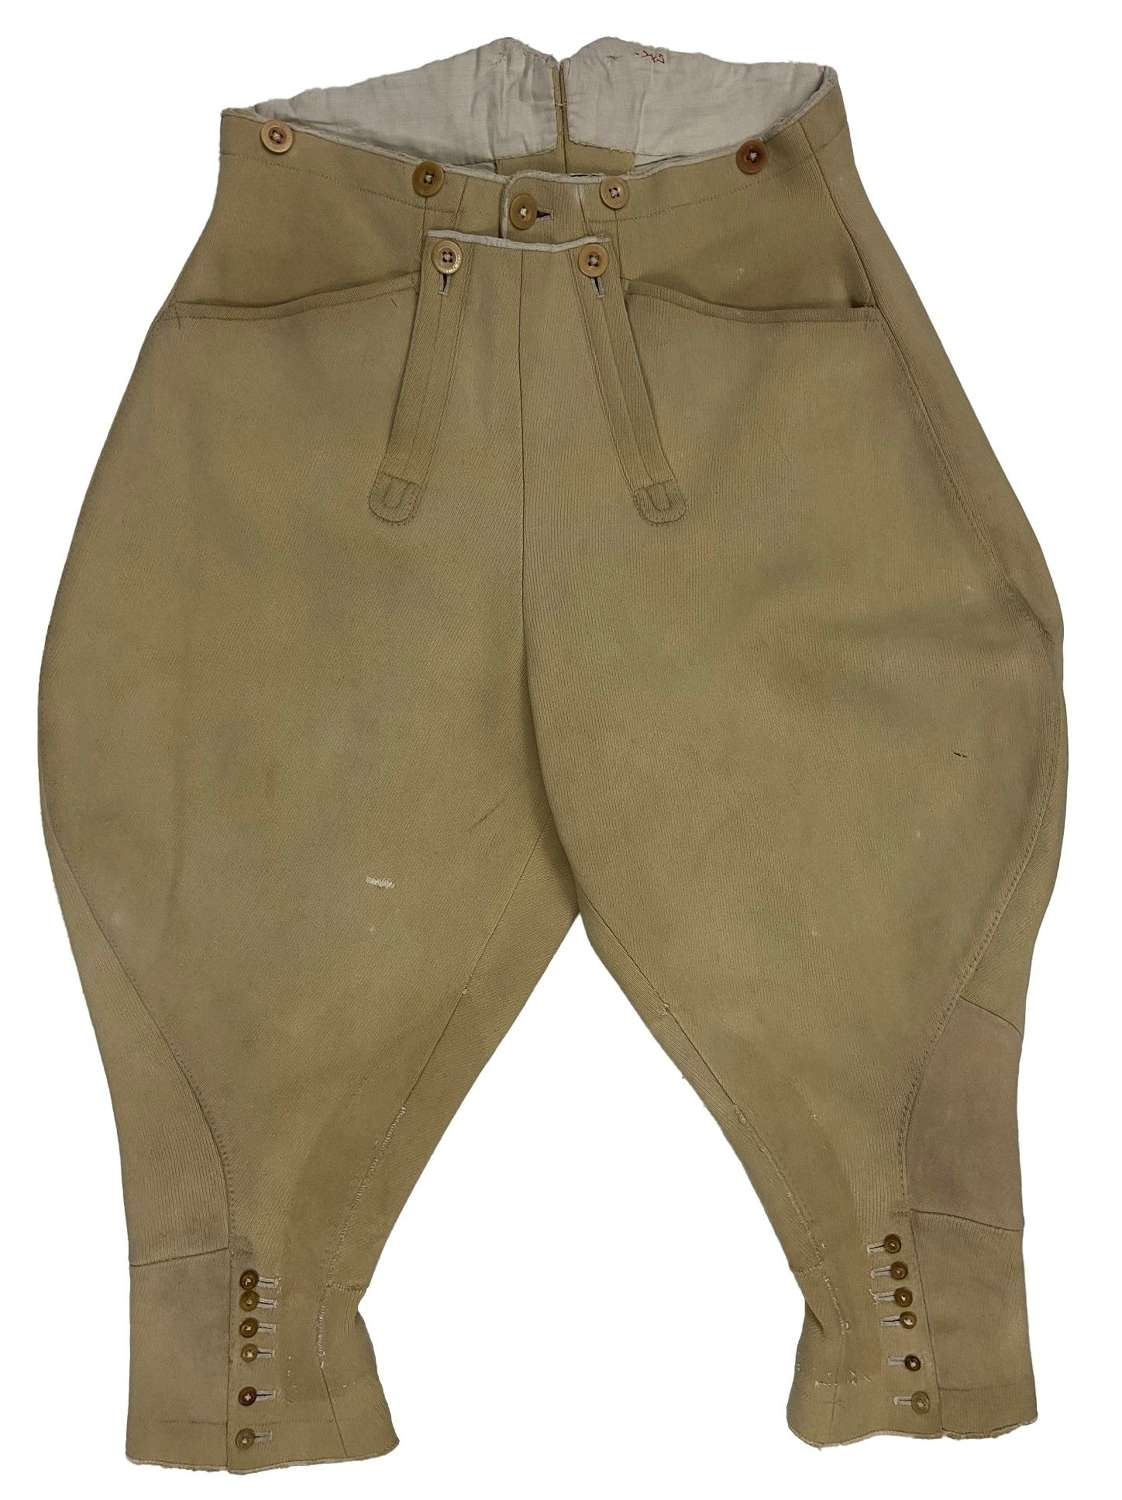 Original 1930s Men's Whipcord Breeches by 'Bernard Weatherill Ltd'